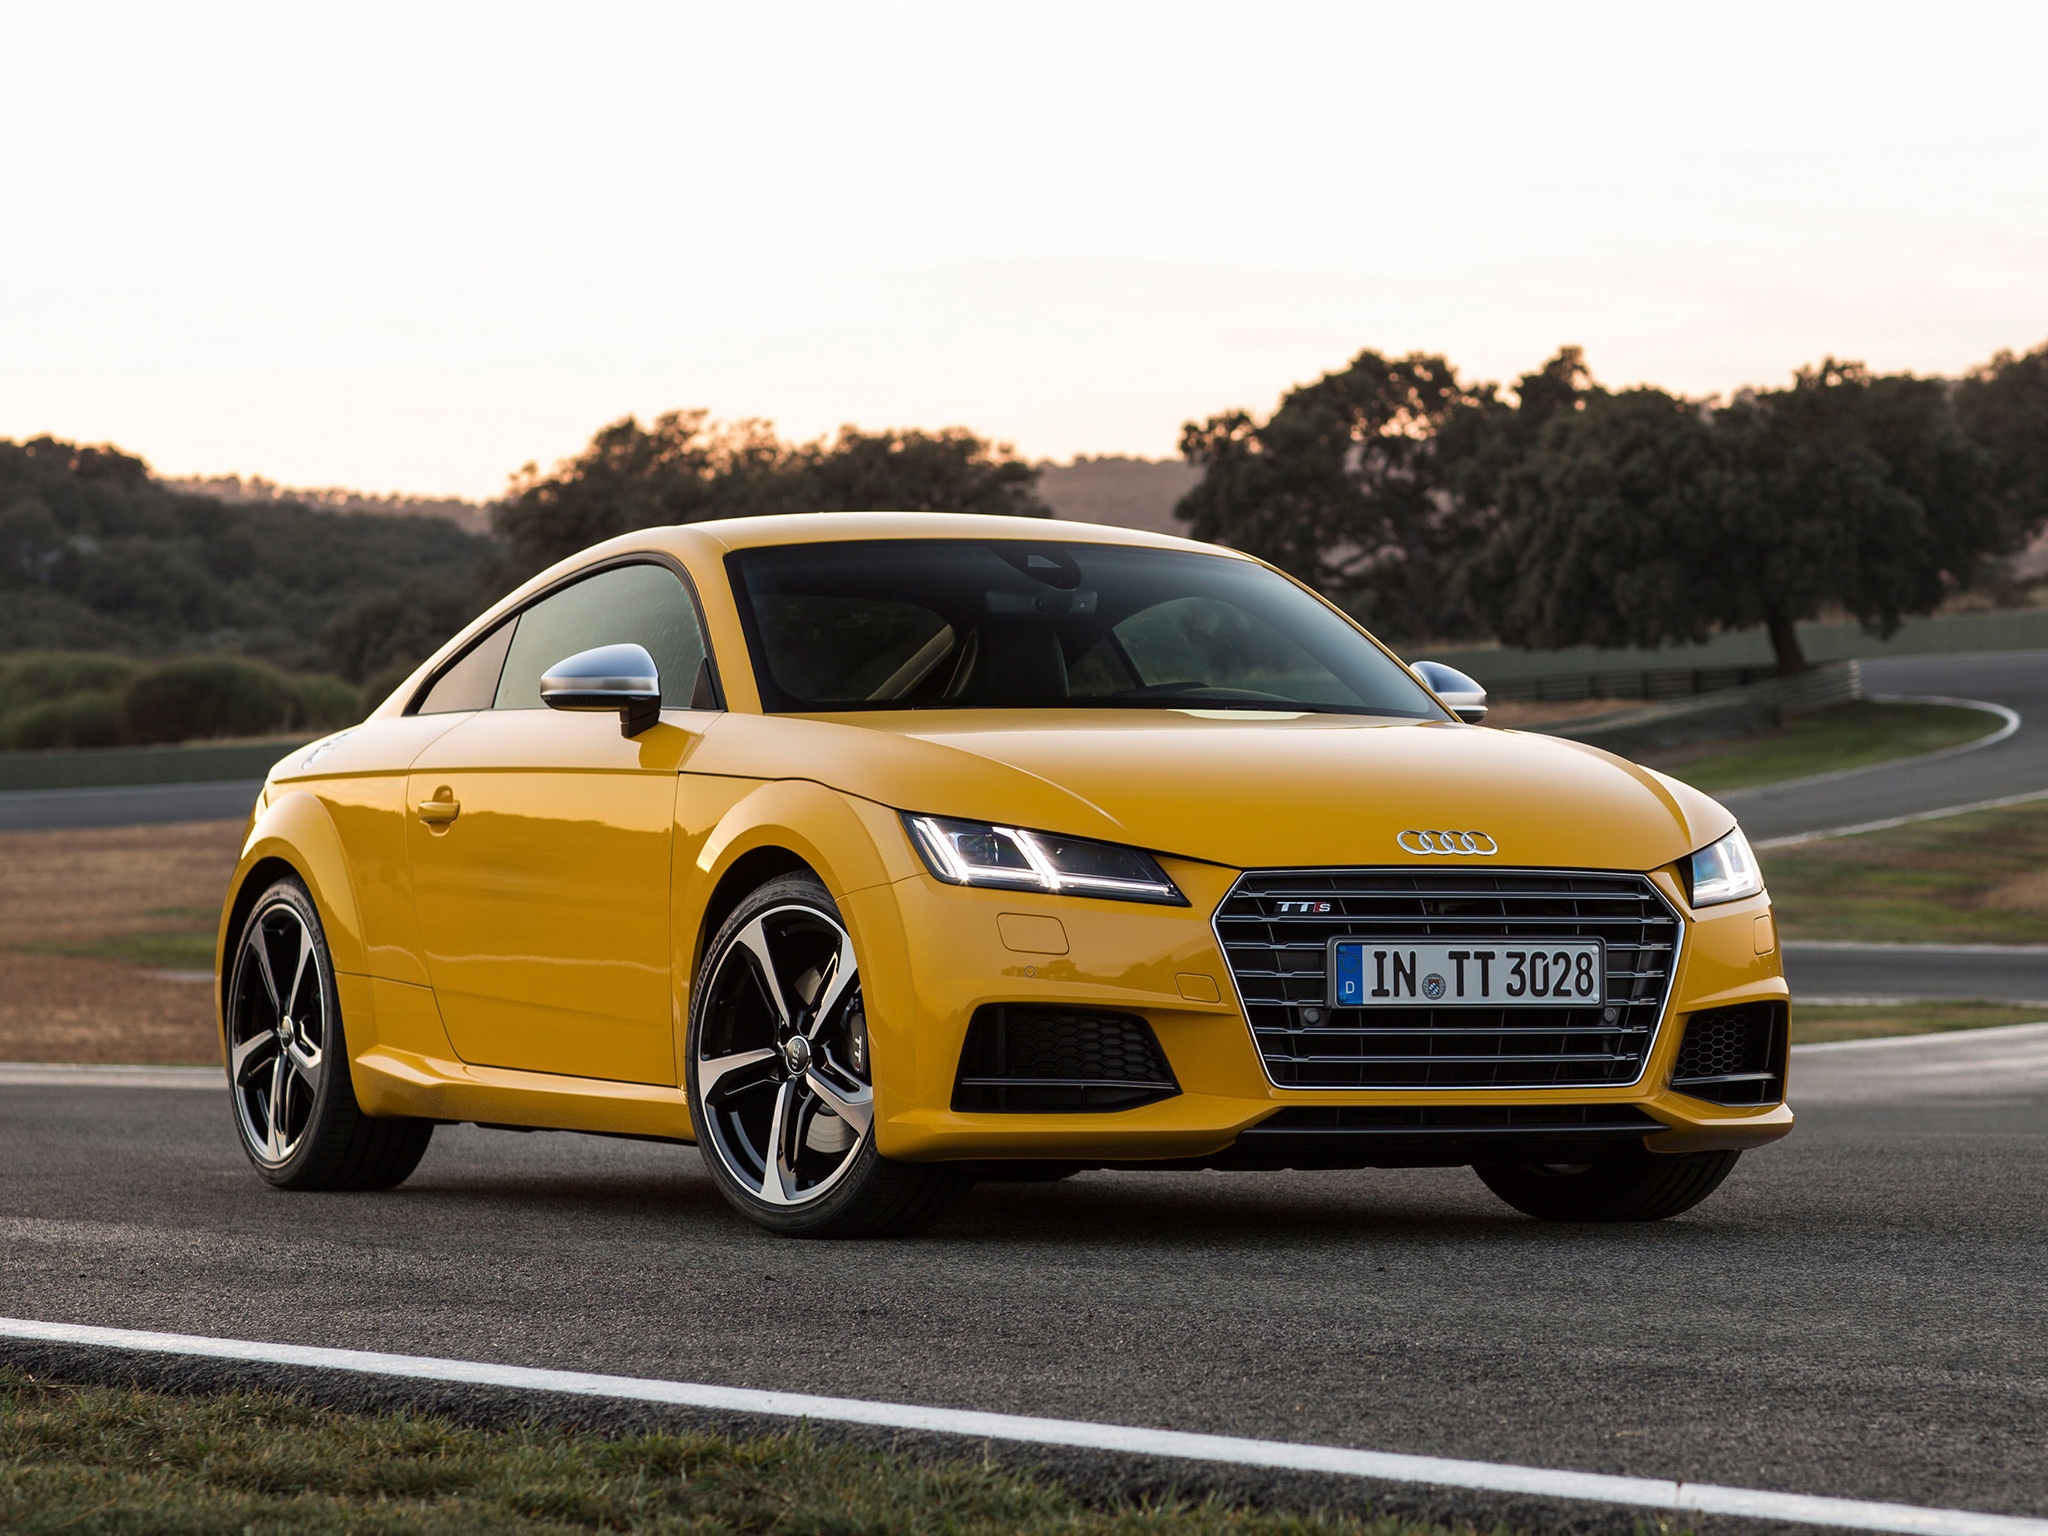 new audi tt tts coupe photos show vegas yellow and tango red colors autoevolution. Black Bedroom Furniture Sets. Home Design Ideas